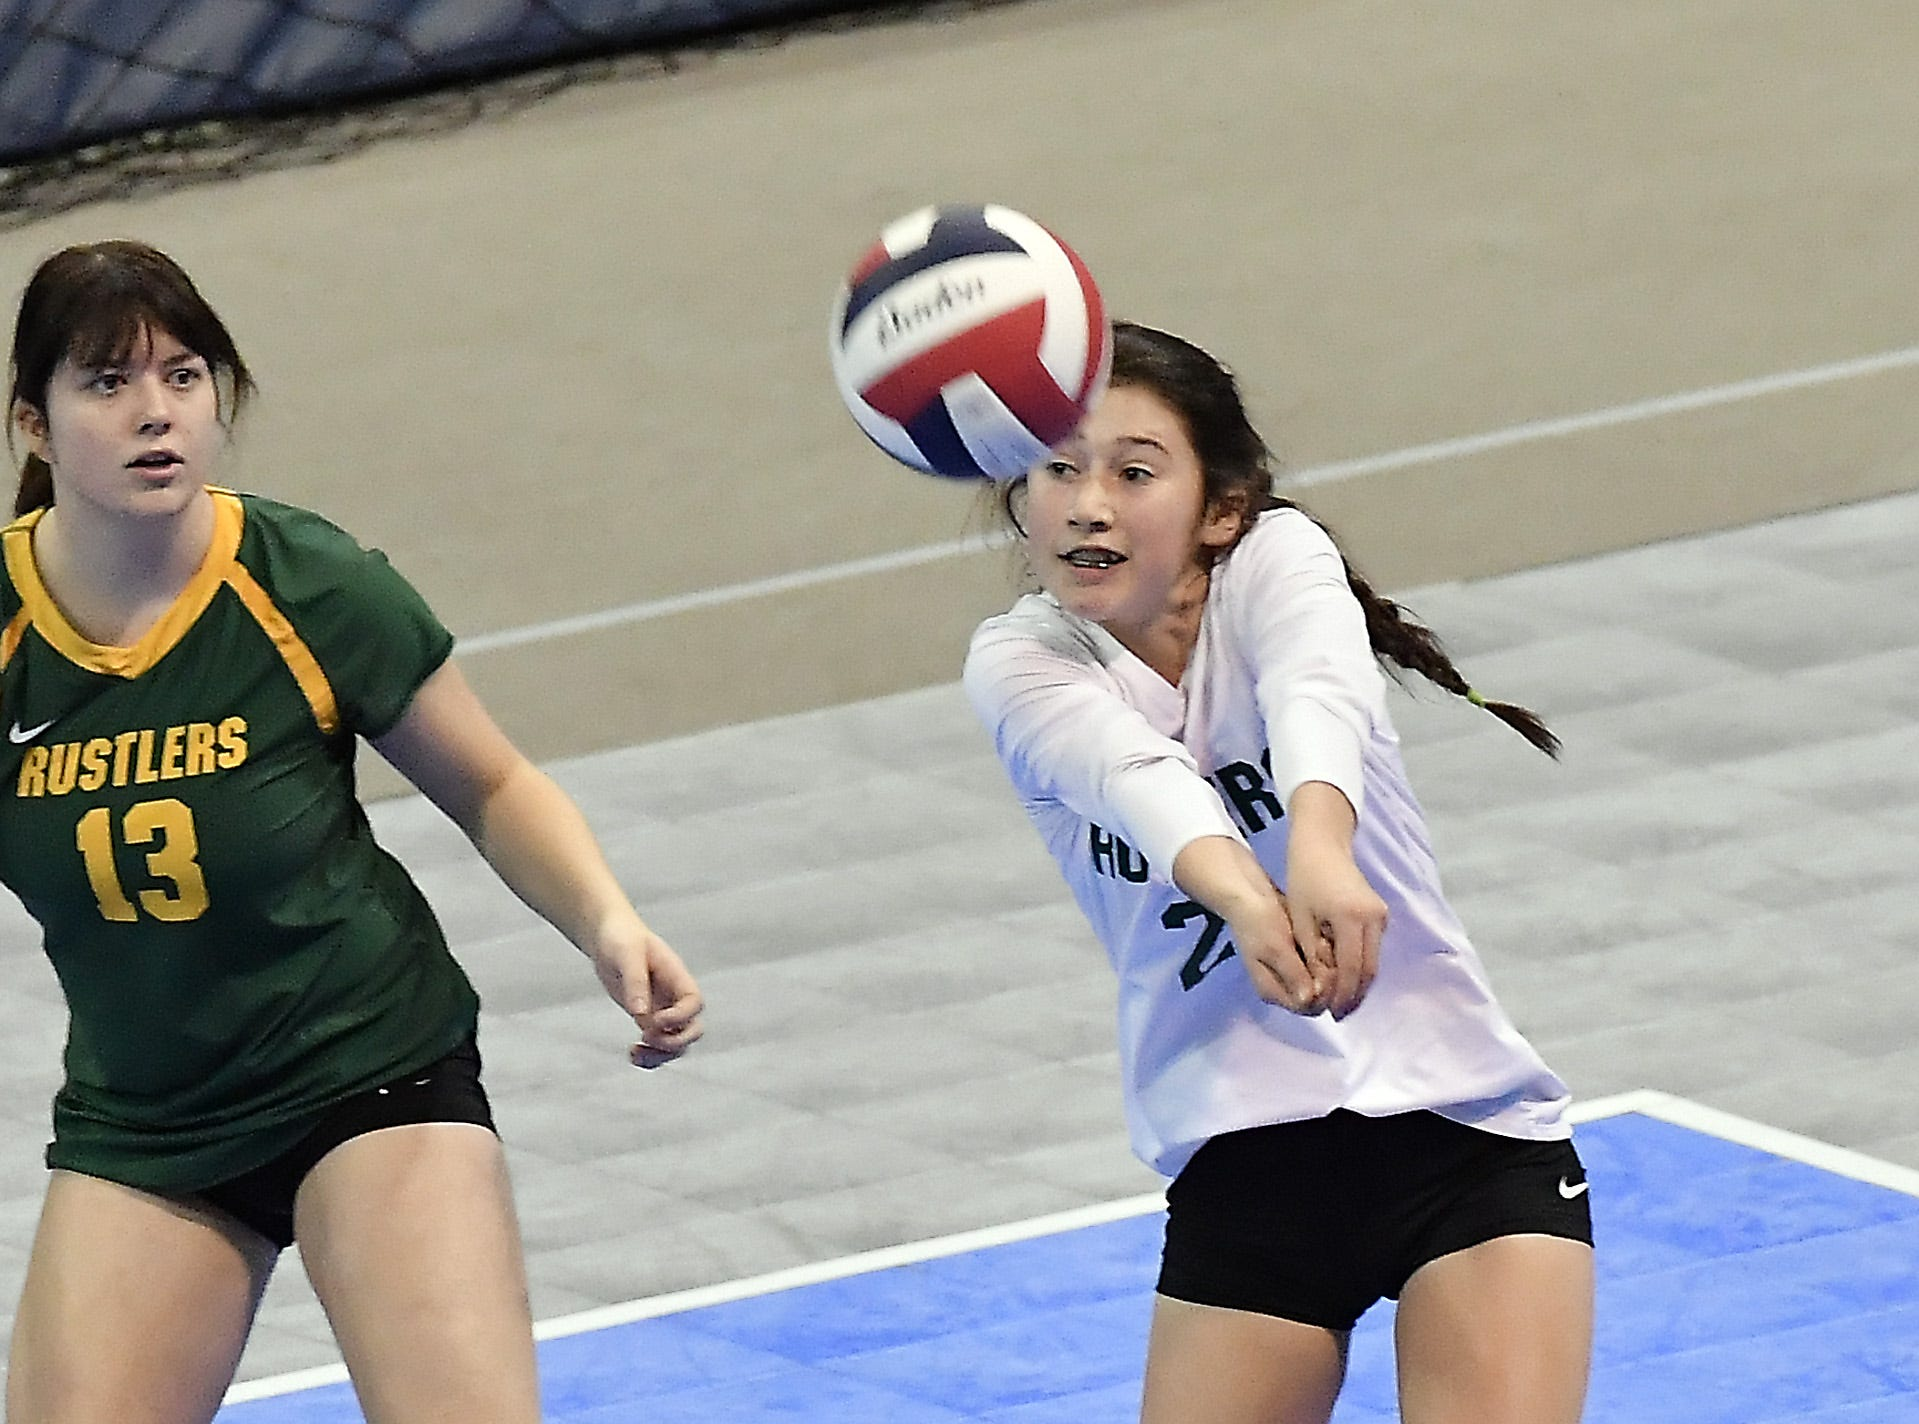 CMR's Lauren Lindseth records the dig as teammate Ally Dube looks on in a match against Kalispell Flathead at the All-Class State Volleyball Tournament at the Brick Breeden Fieldhouse in Bozeman Friday.